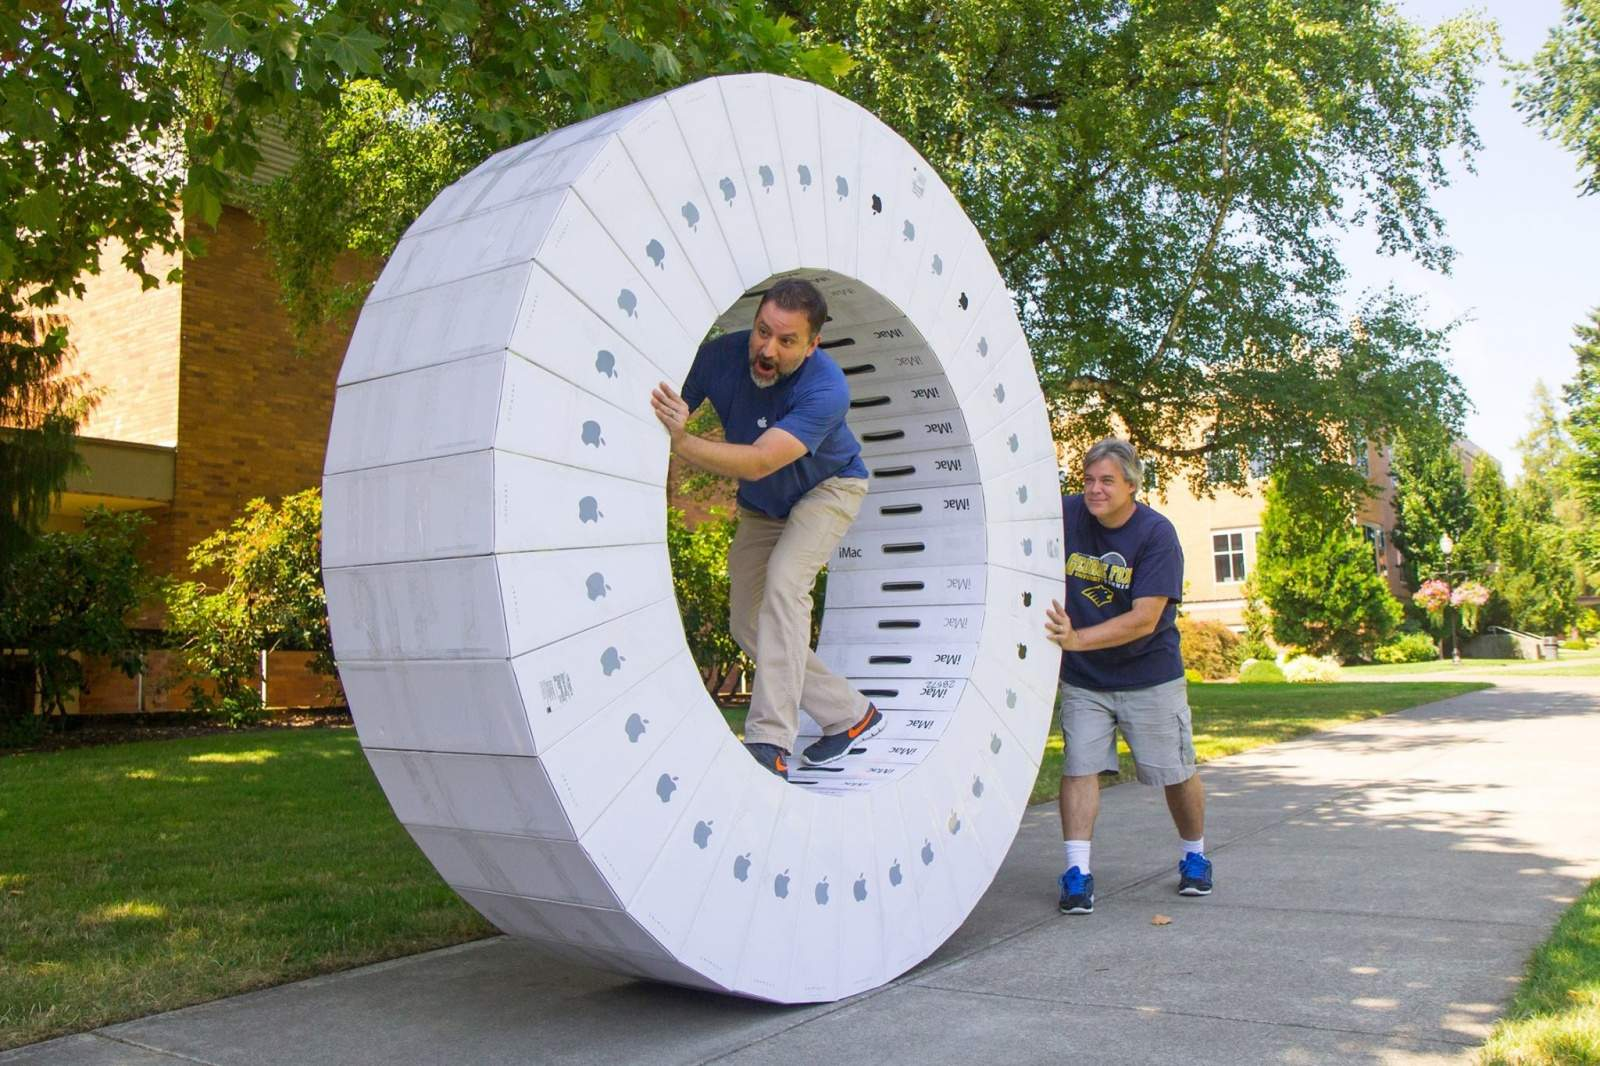 This cardboard hamster wheel would cost you $1800 make... and that's if you bought the boxes empty.